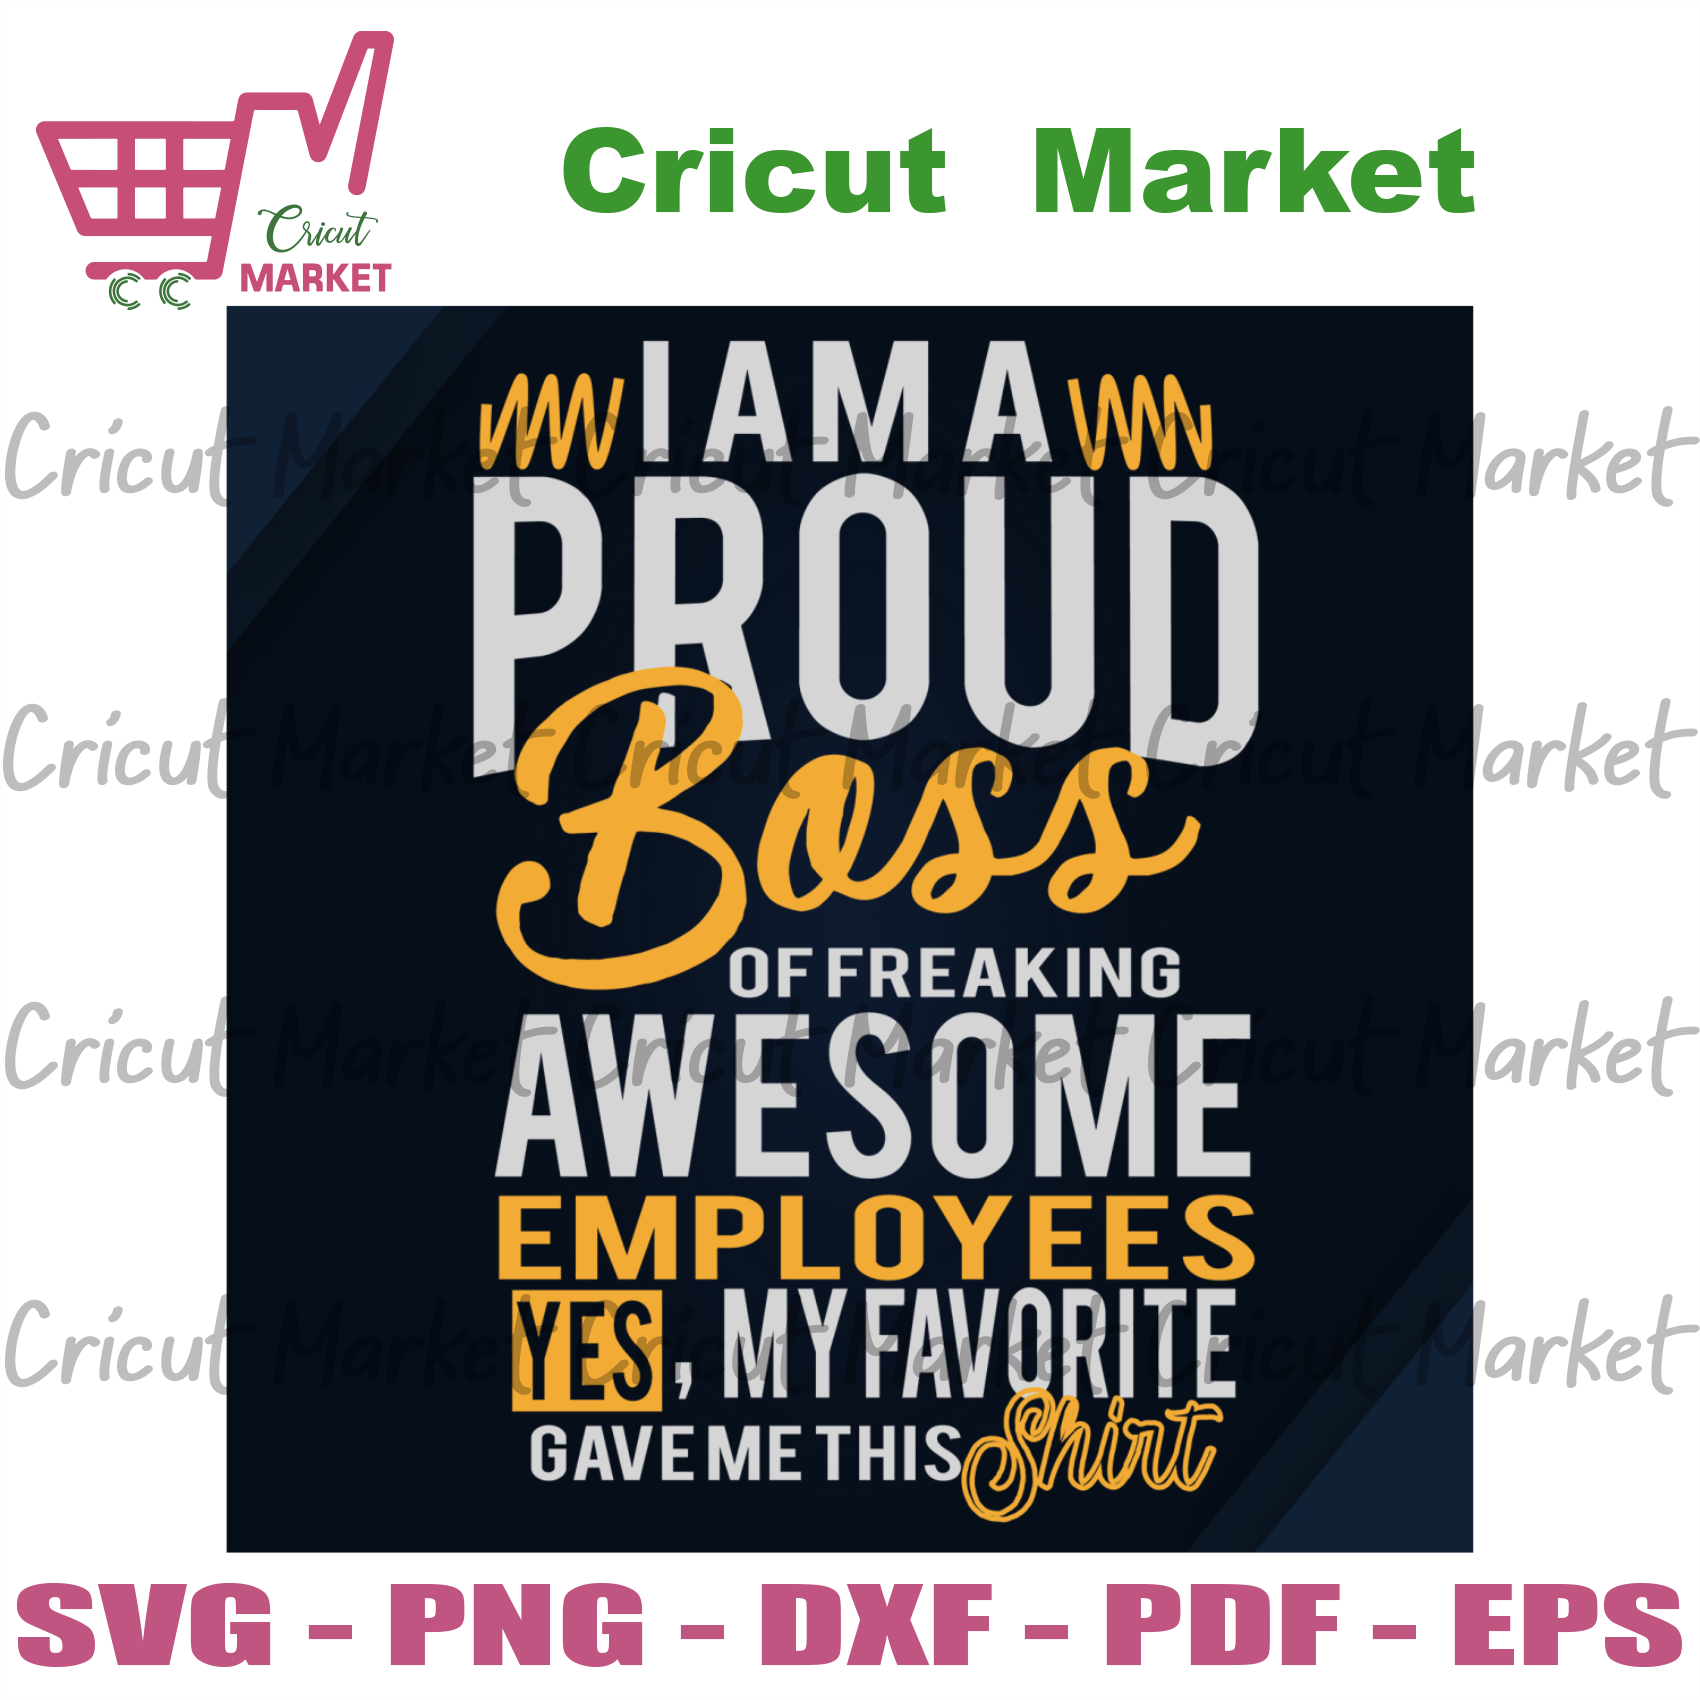 I Am A Pround Boss, Trending, Trending Svg, Trending Now, Quotes Svg, Best Saying Svg, Inspirational Quotes, Inspiration, Motivational Quotes, Motivational Saying, Best Quotes - Cricut Market